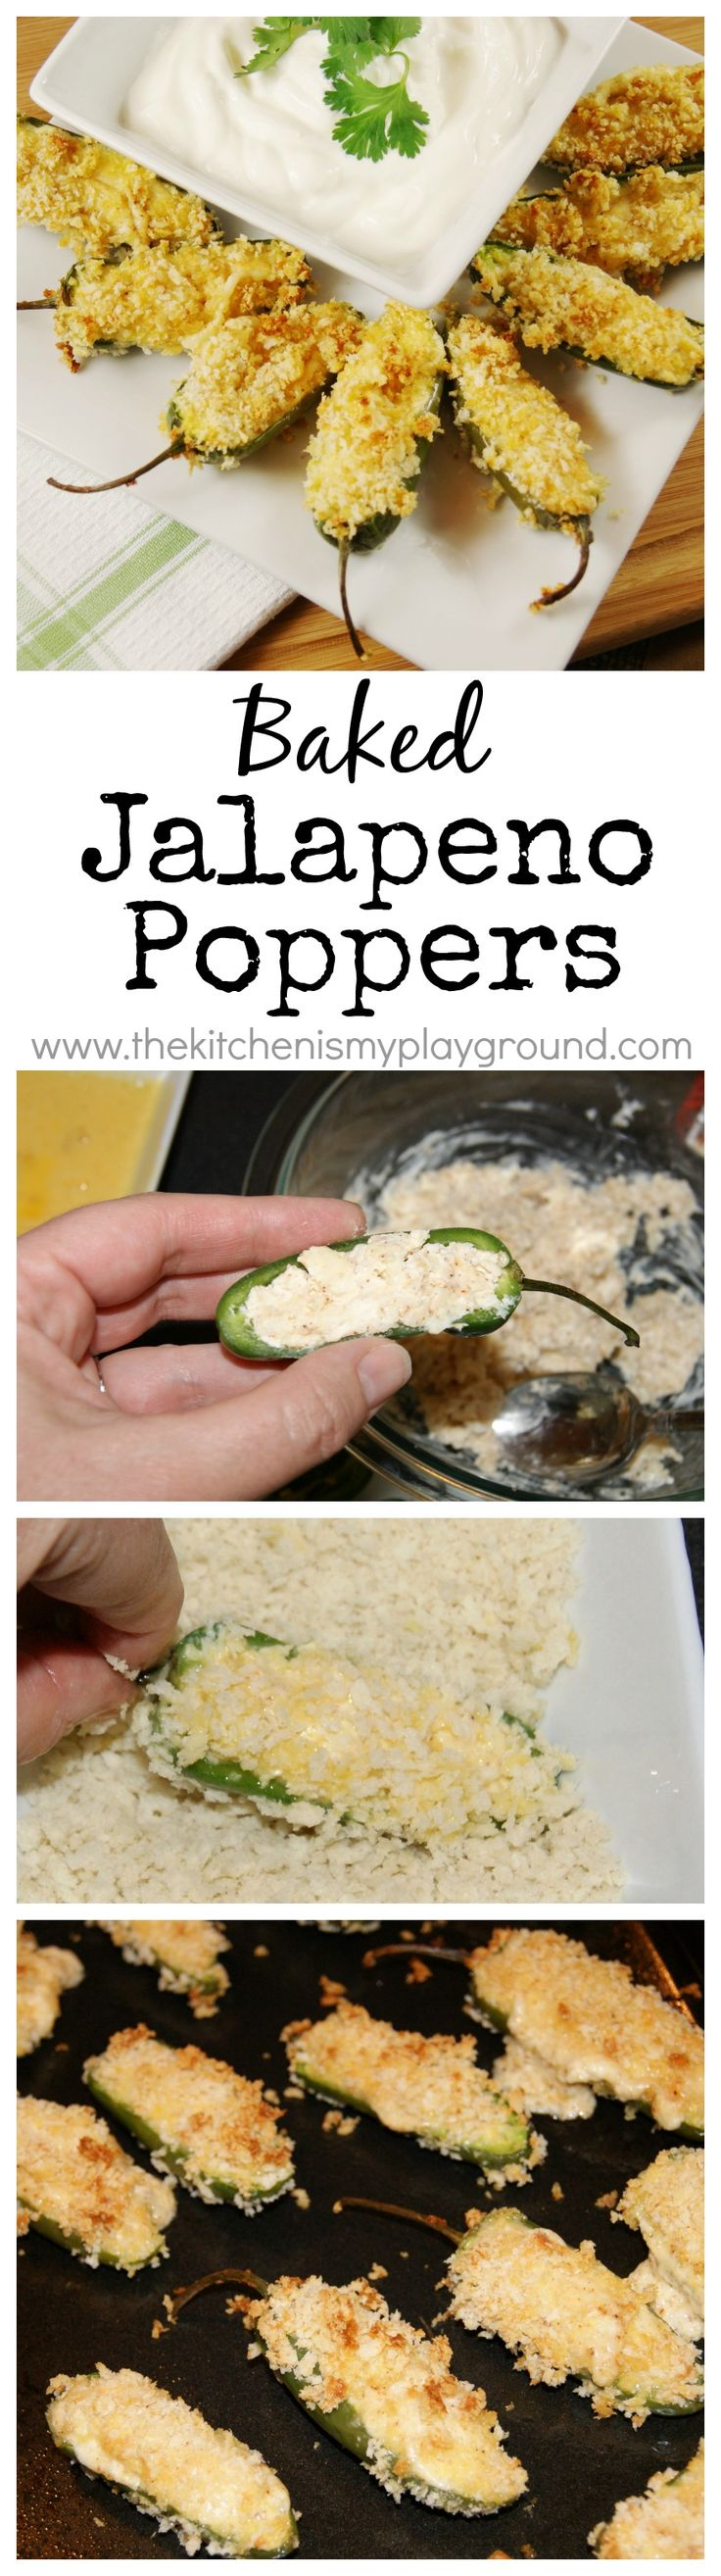 Baked Jalapeno Poppers ~ these pack a delicious spicy punch without the fat or hassle of frying.  So good! #jalapenopoppers #gameday #partyfood www.thekitchenismyplayground.com